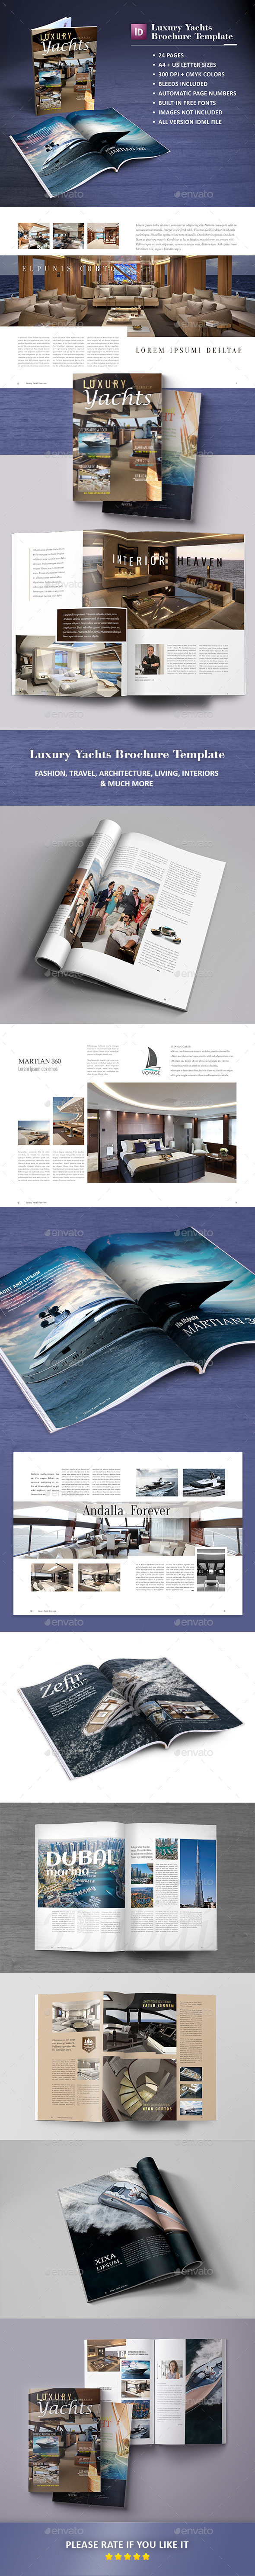 Luxury Yachts Brochure Template - Catalogs Brochures